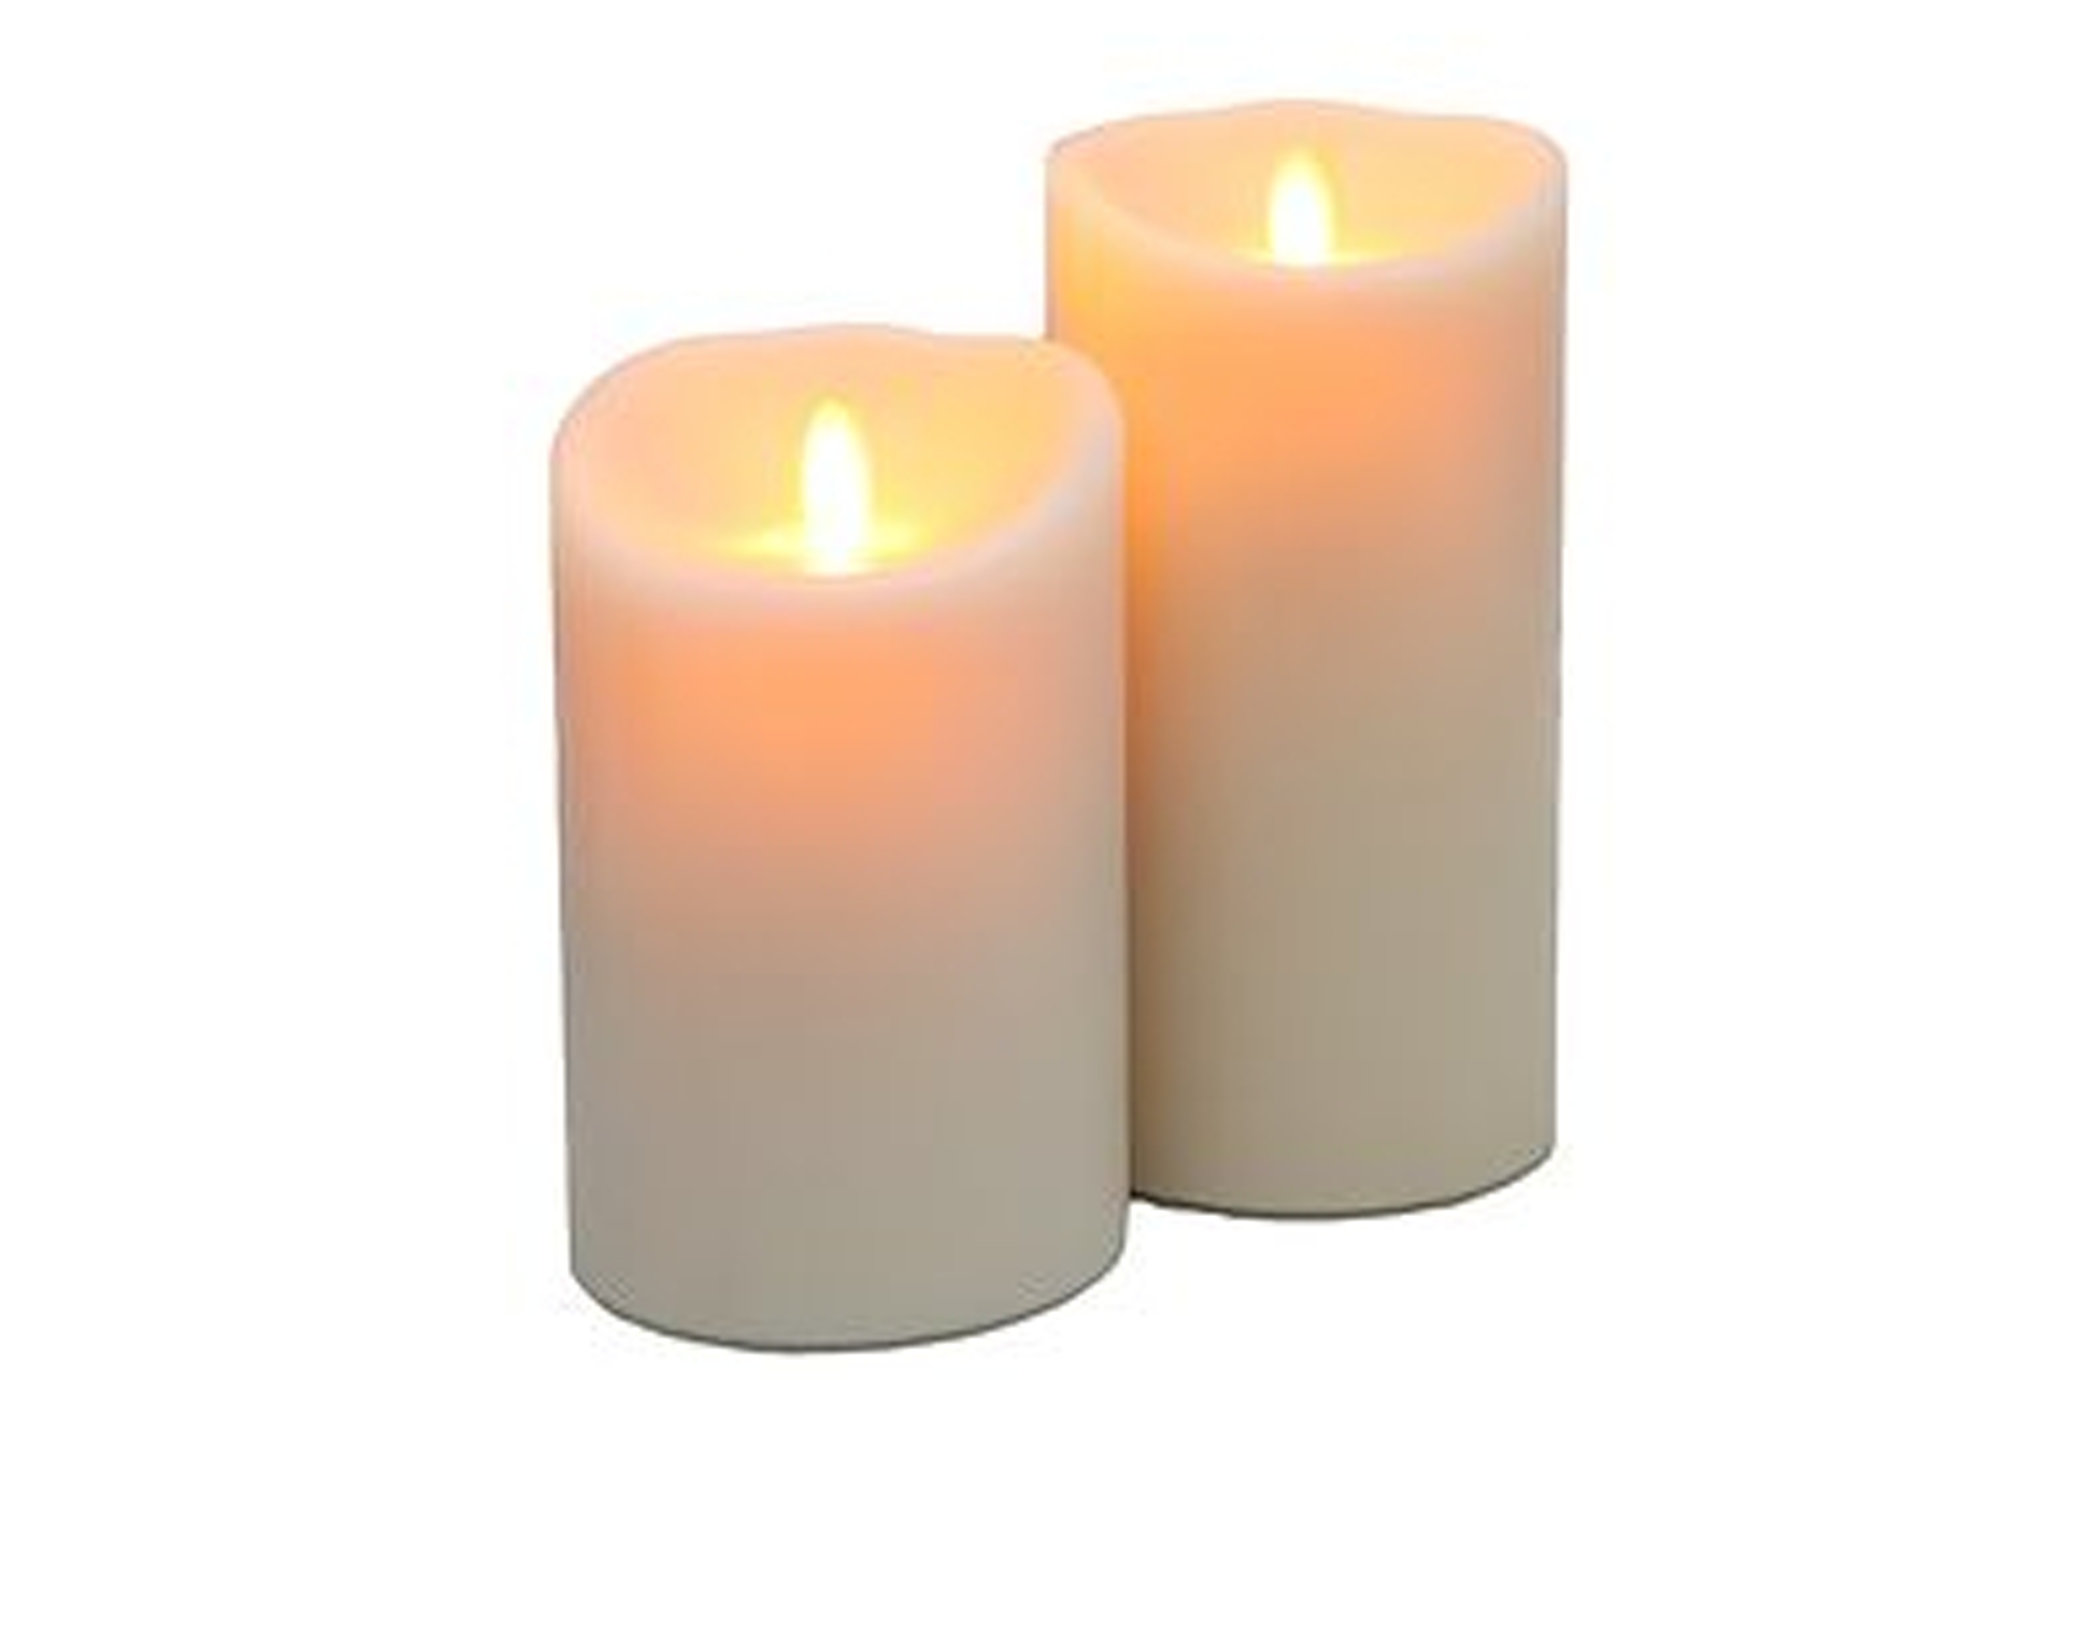 Candle  PNG HD - 123077